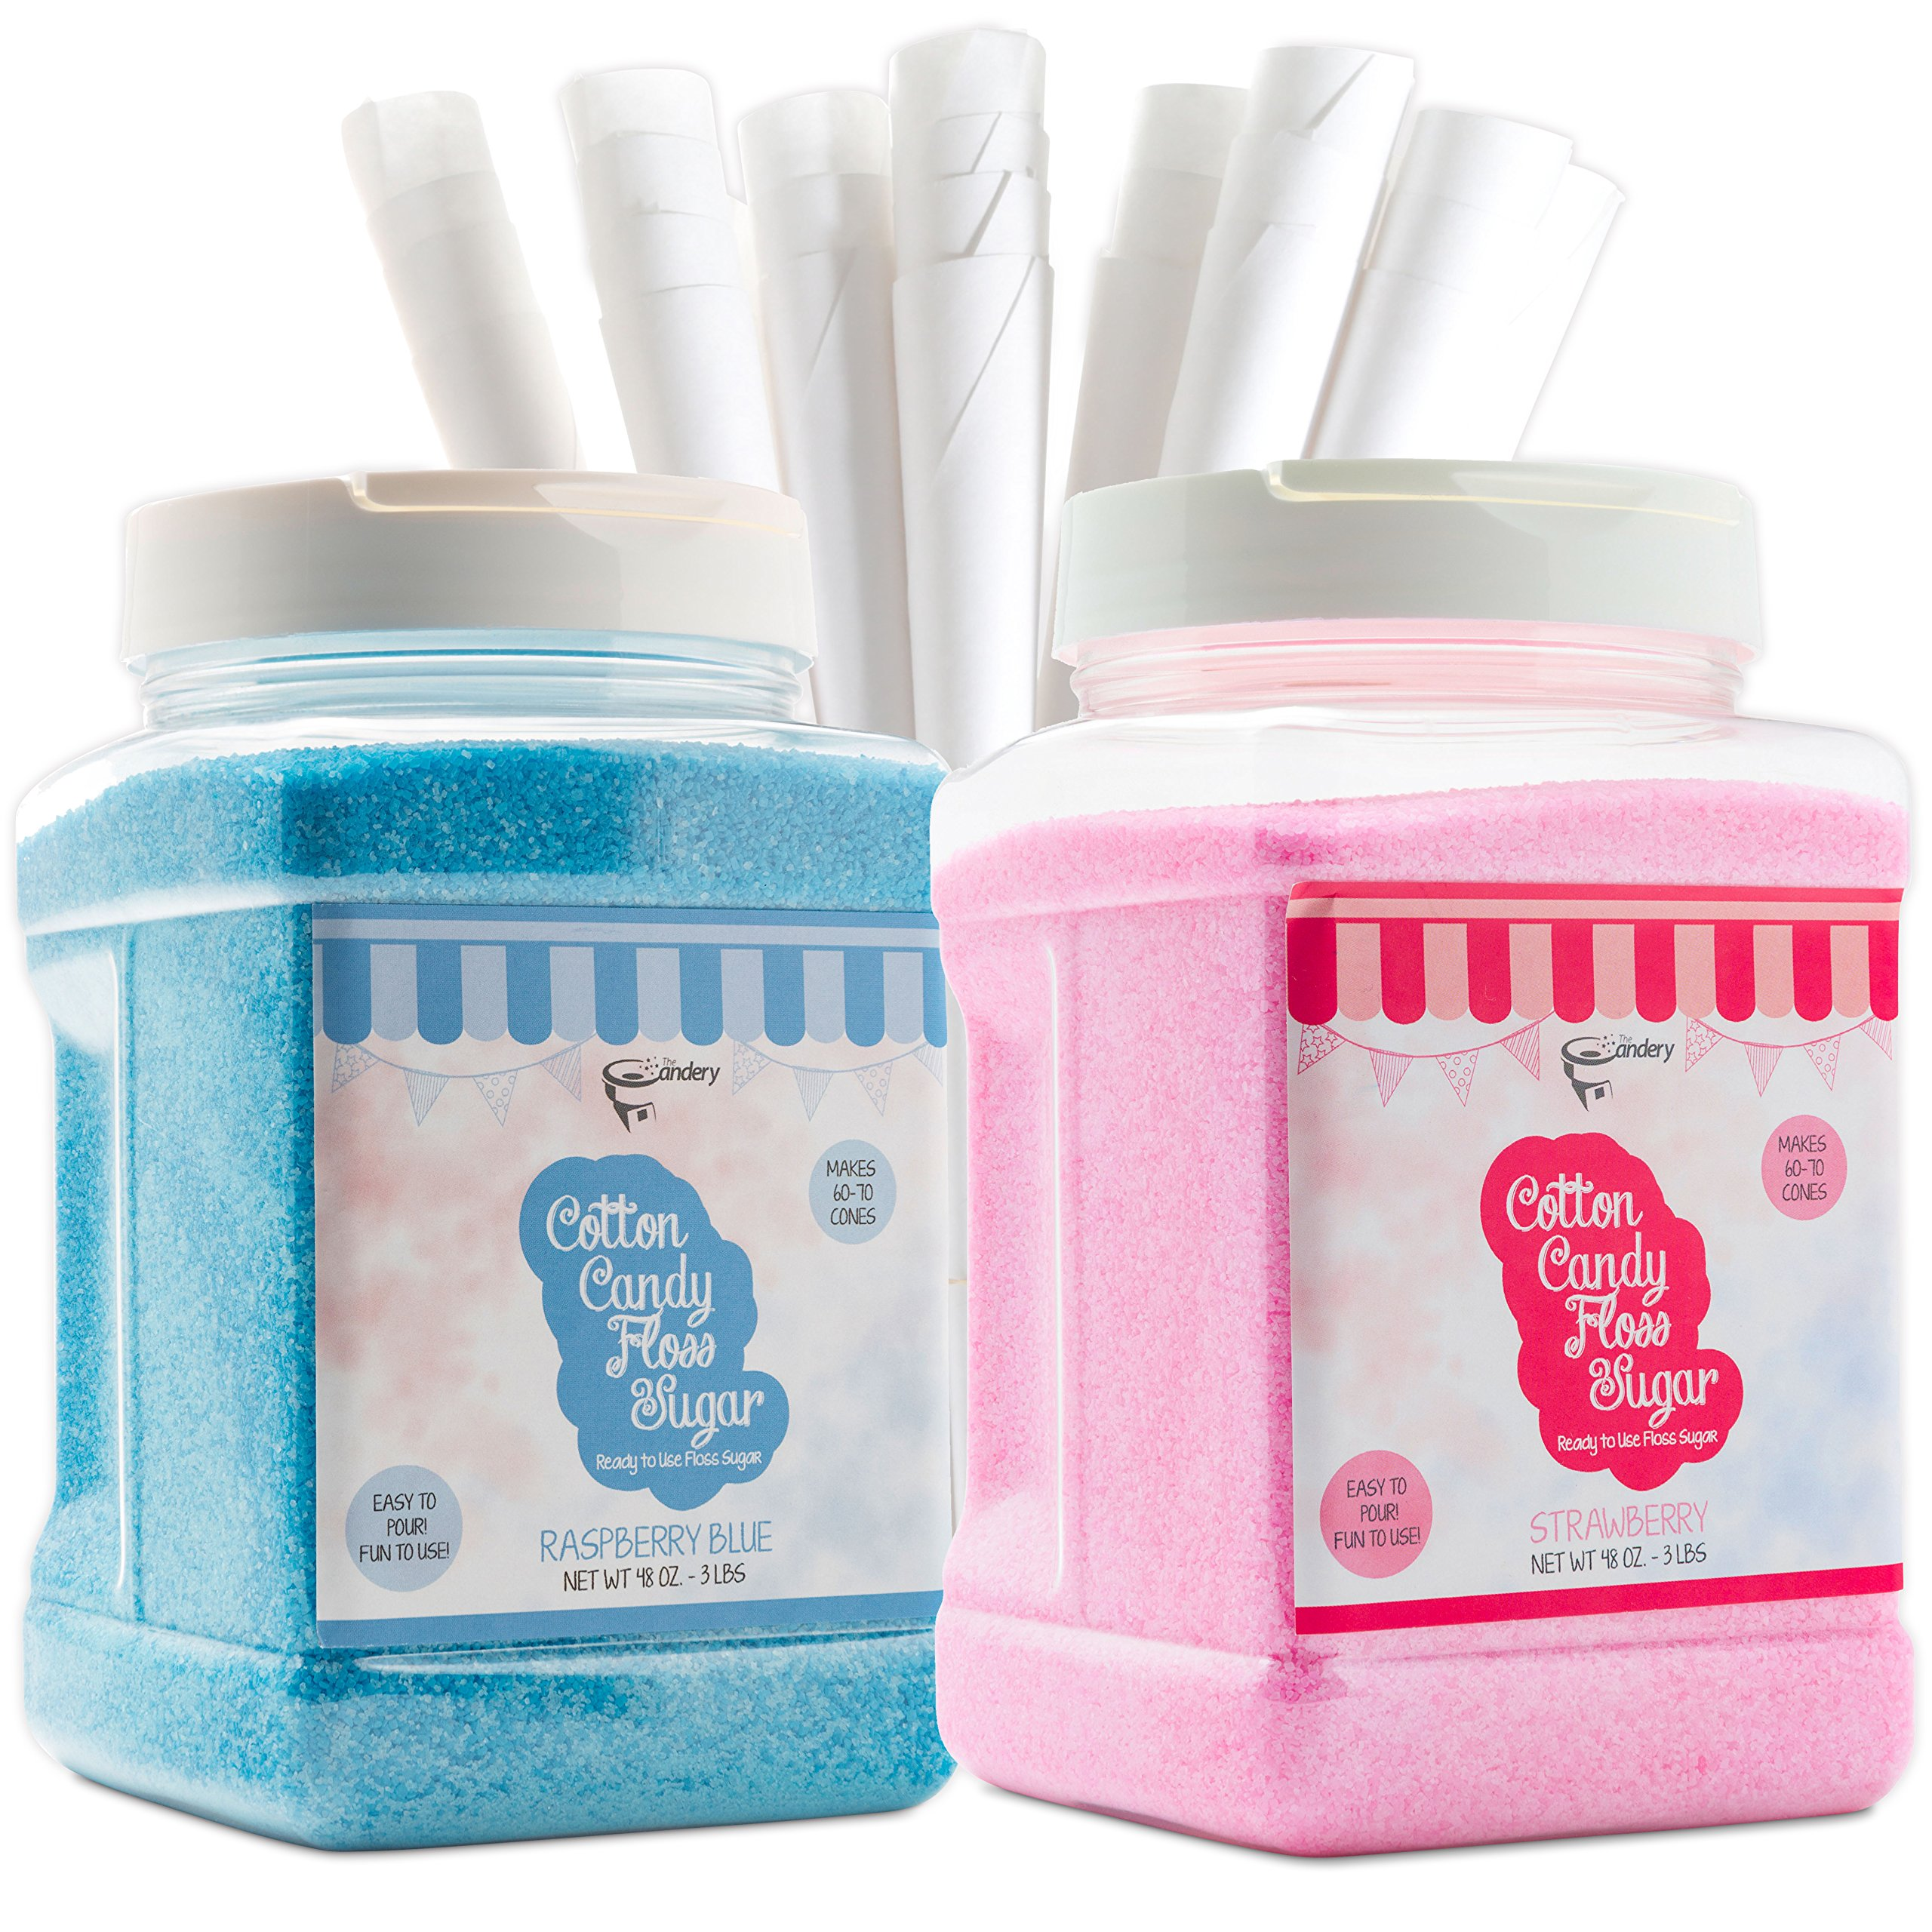 The Candery Cotton Candy Floss Sugar (2-Pack) Includes 100 Premium Cones | Raspberry Blue and Strawberry | Plastic, Reusable Jars | Easy Pour Spout or Scoop | Includes Scooper | 3 LBS Jars